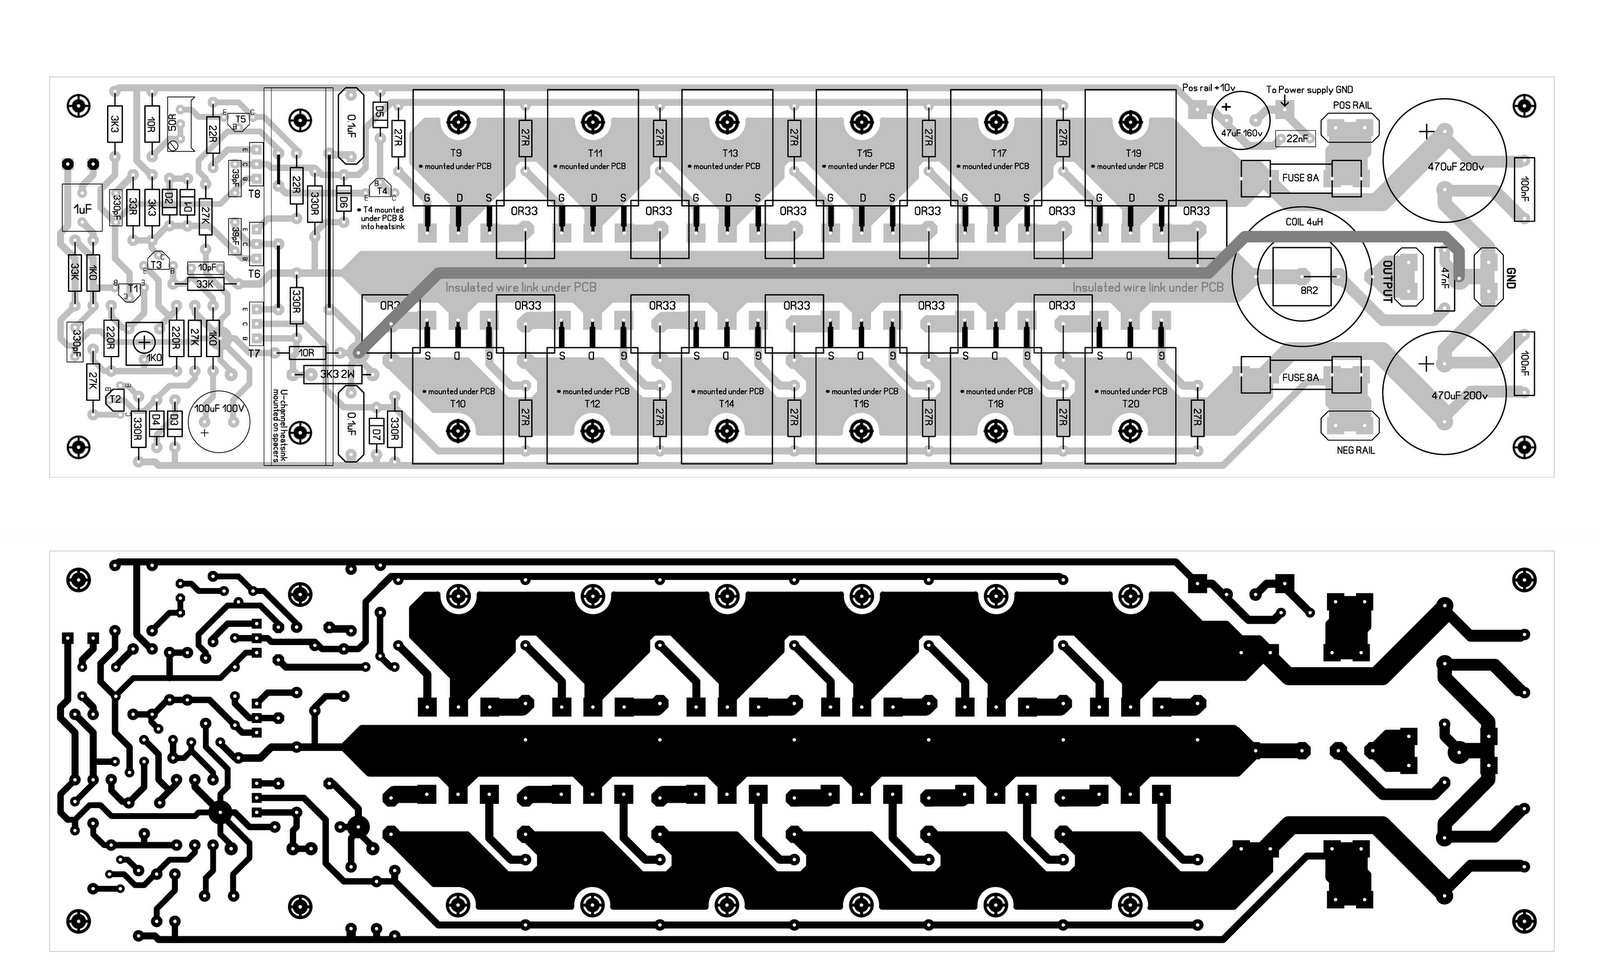 600W Mosfet Power Amplifier PCB Design